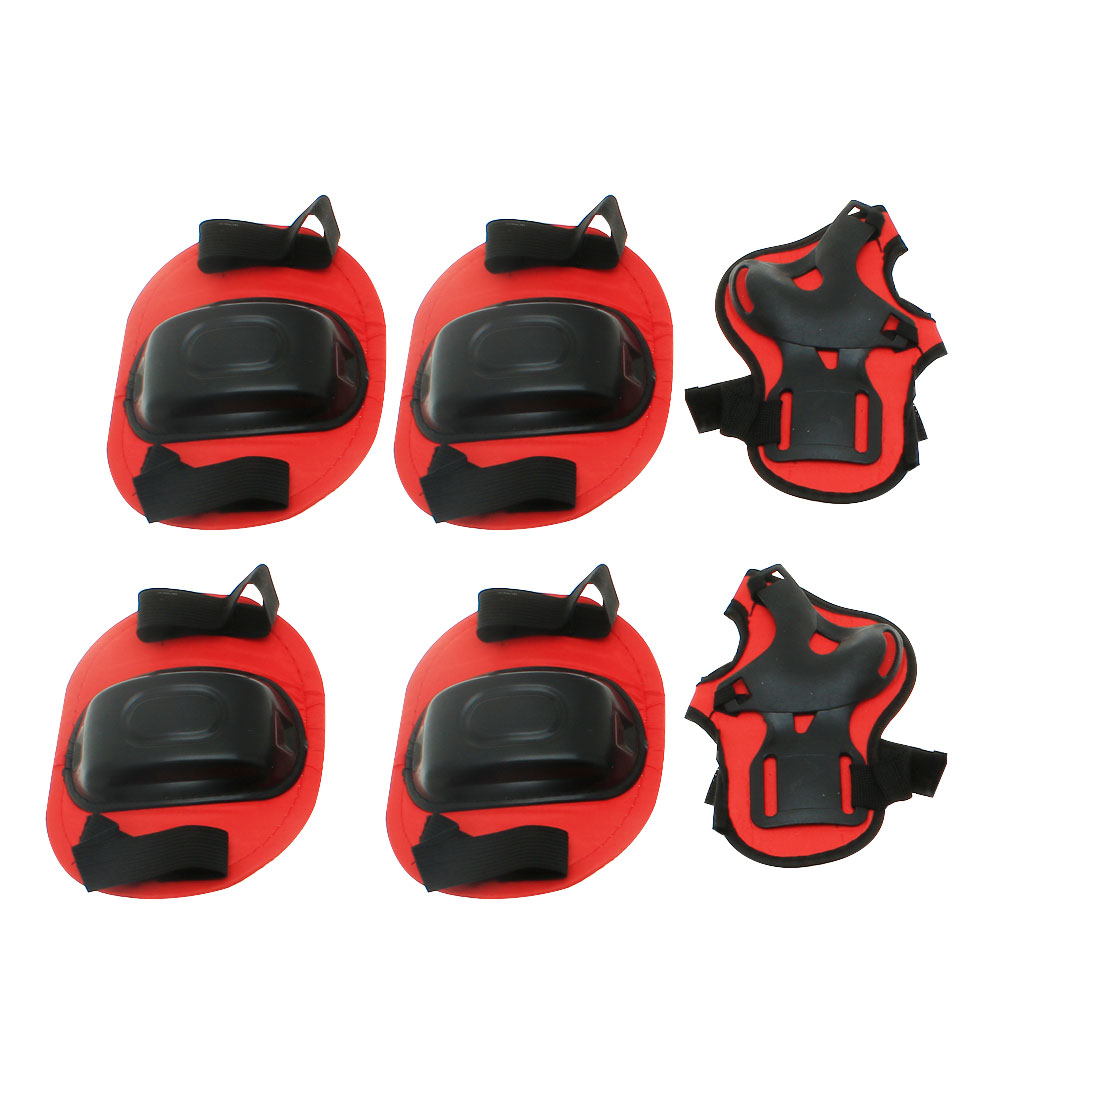 Set 6 in 1 Skateboard Sports Knee Palm Elbow Protector Support Red Black for